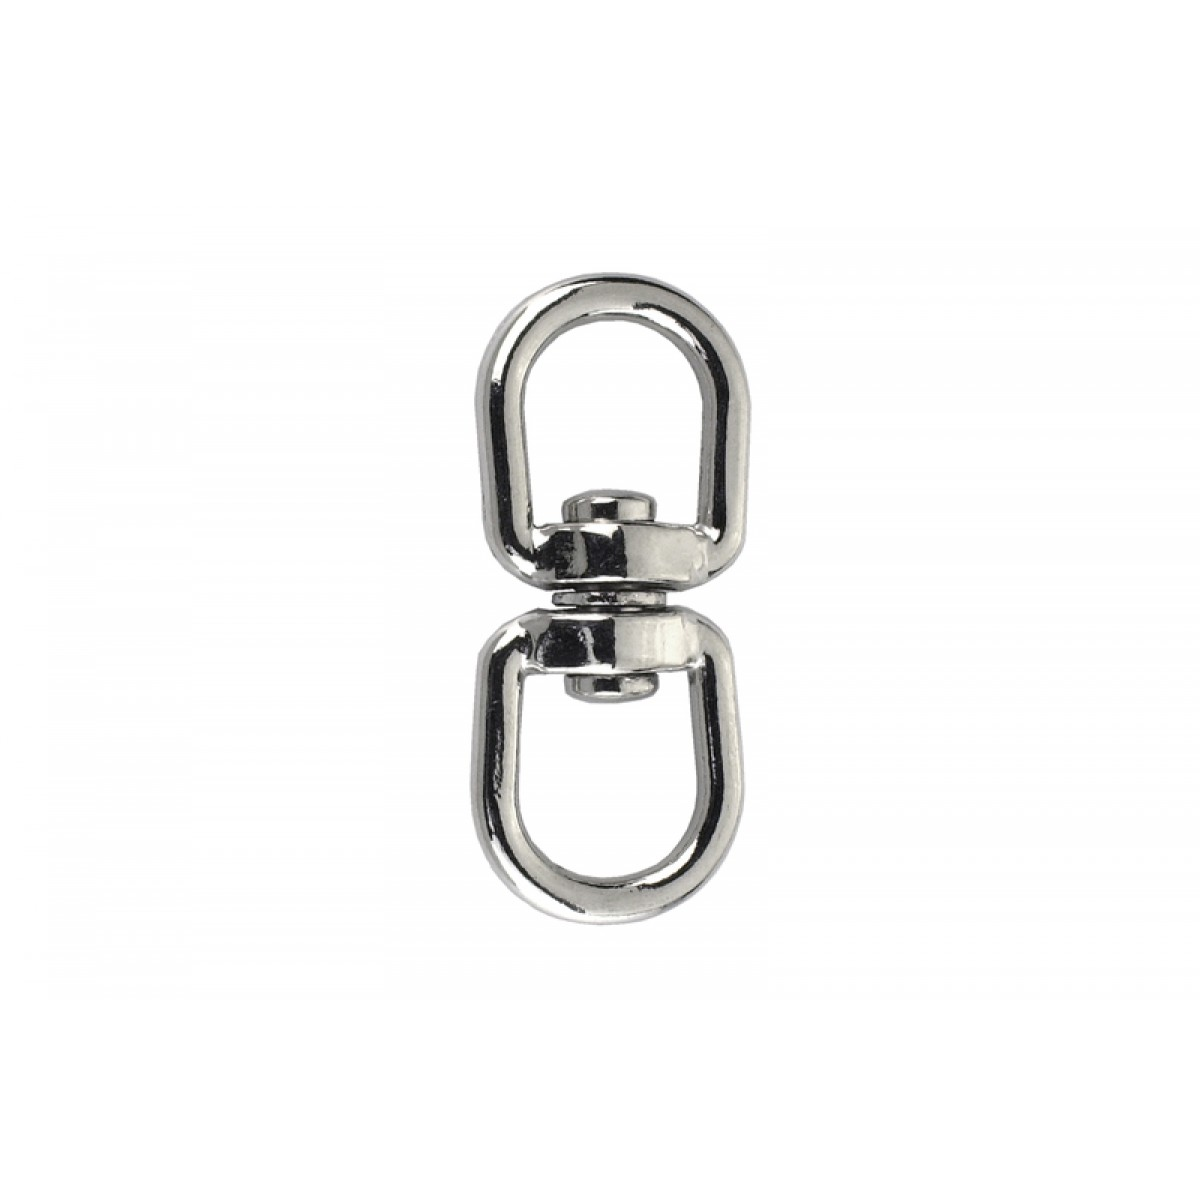 Double Ended Swivel Nickel Coated 12mm ***